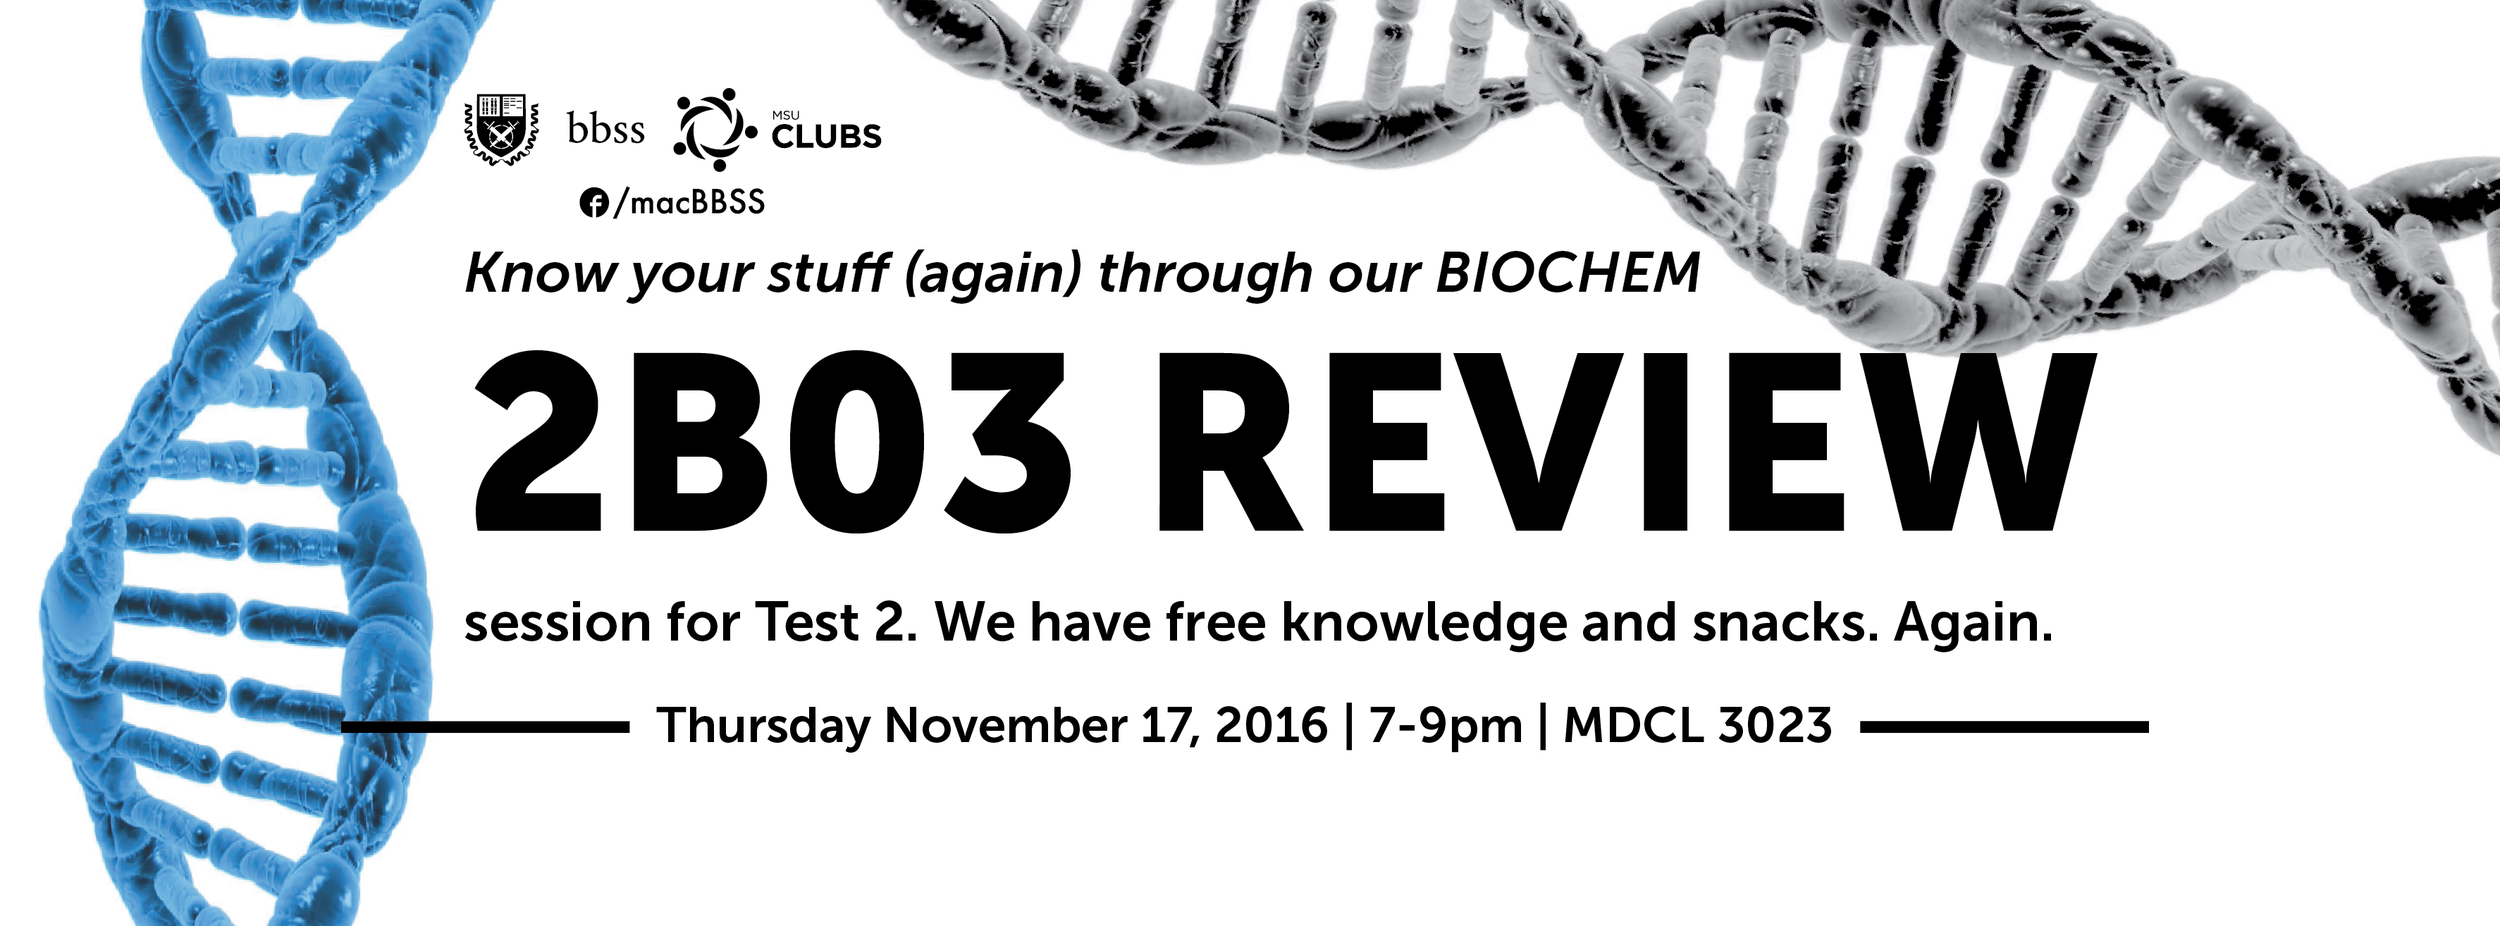 2b03 review session 2 2016